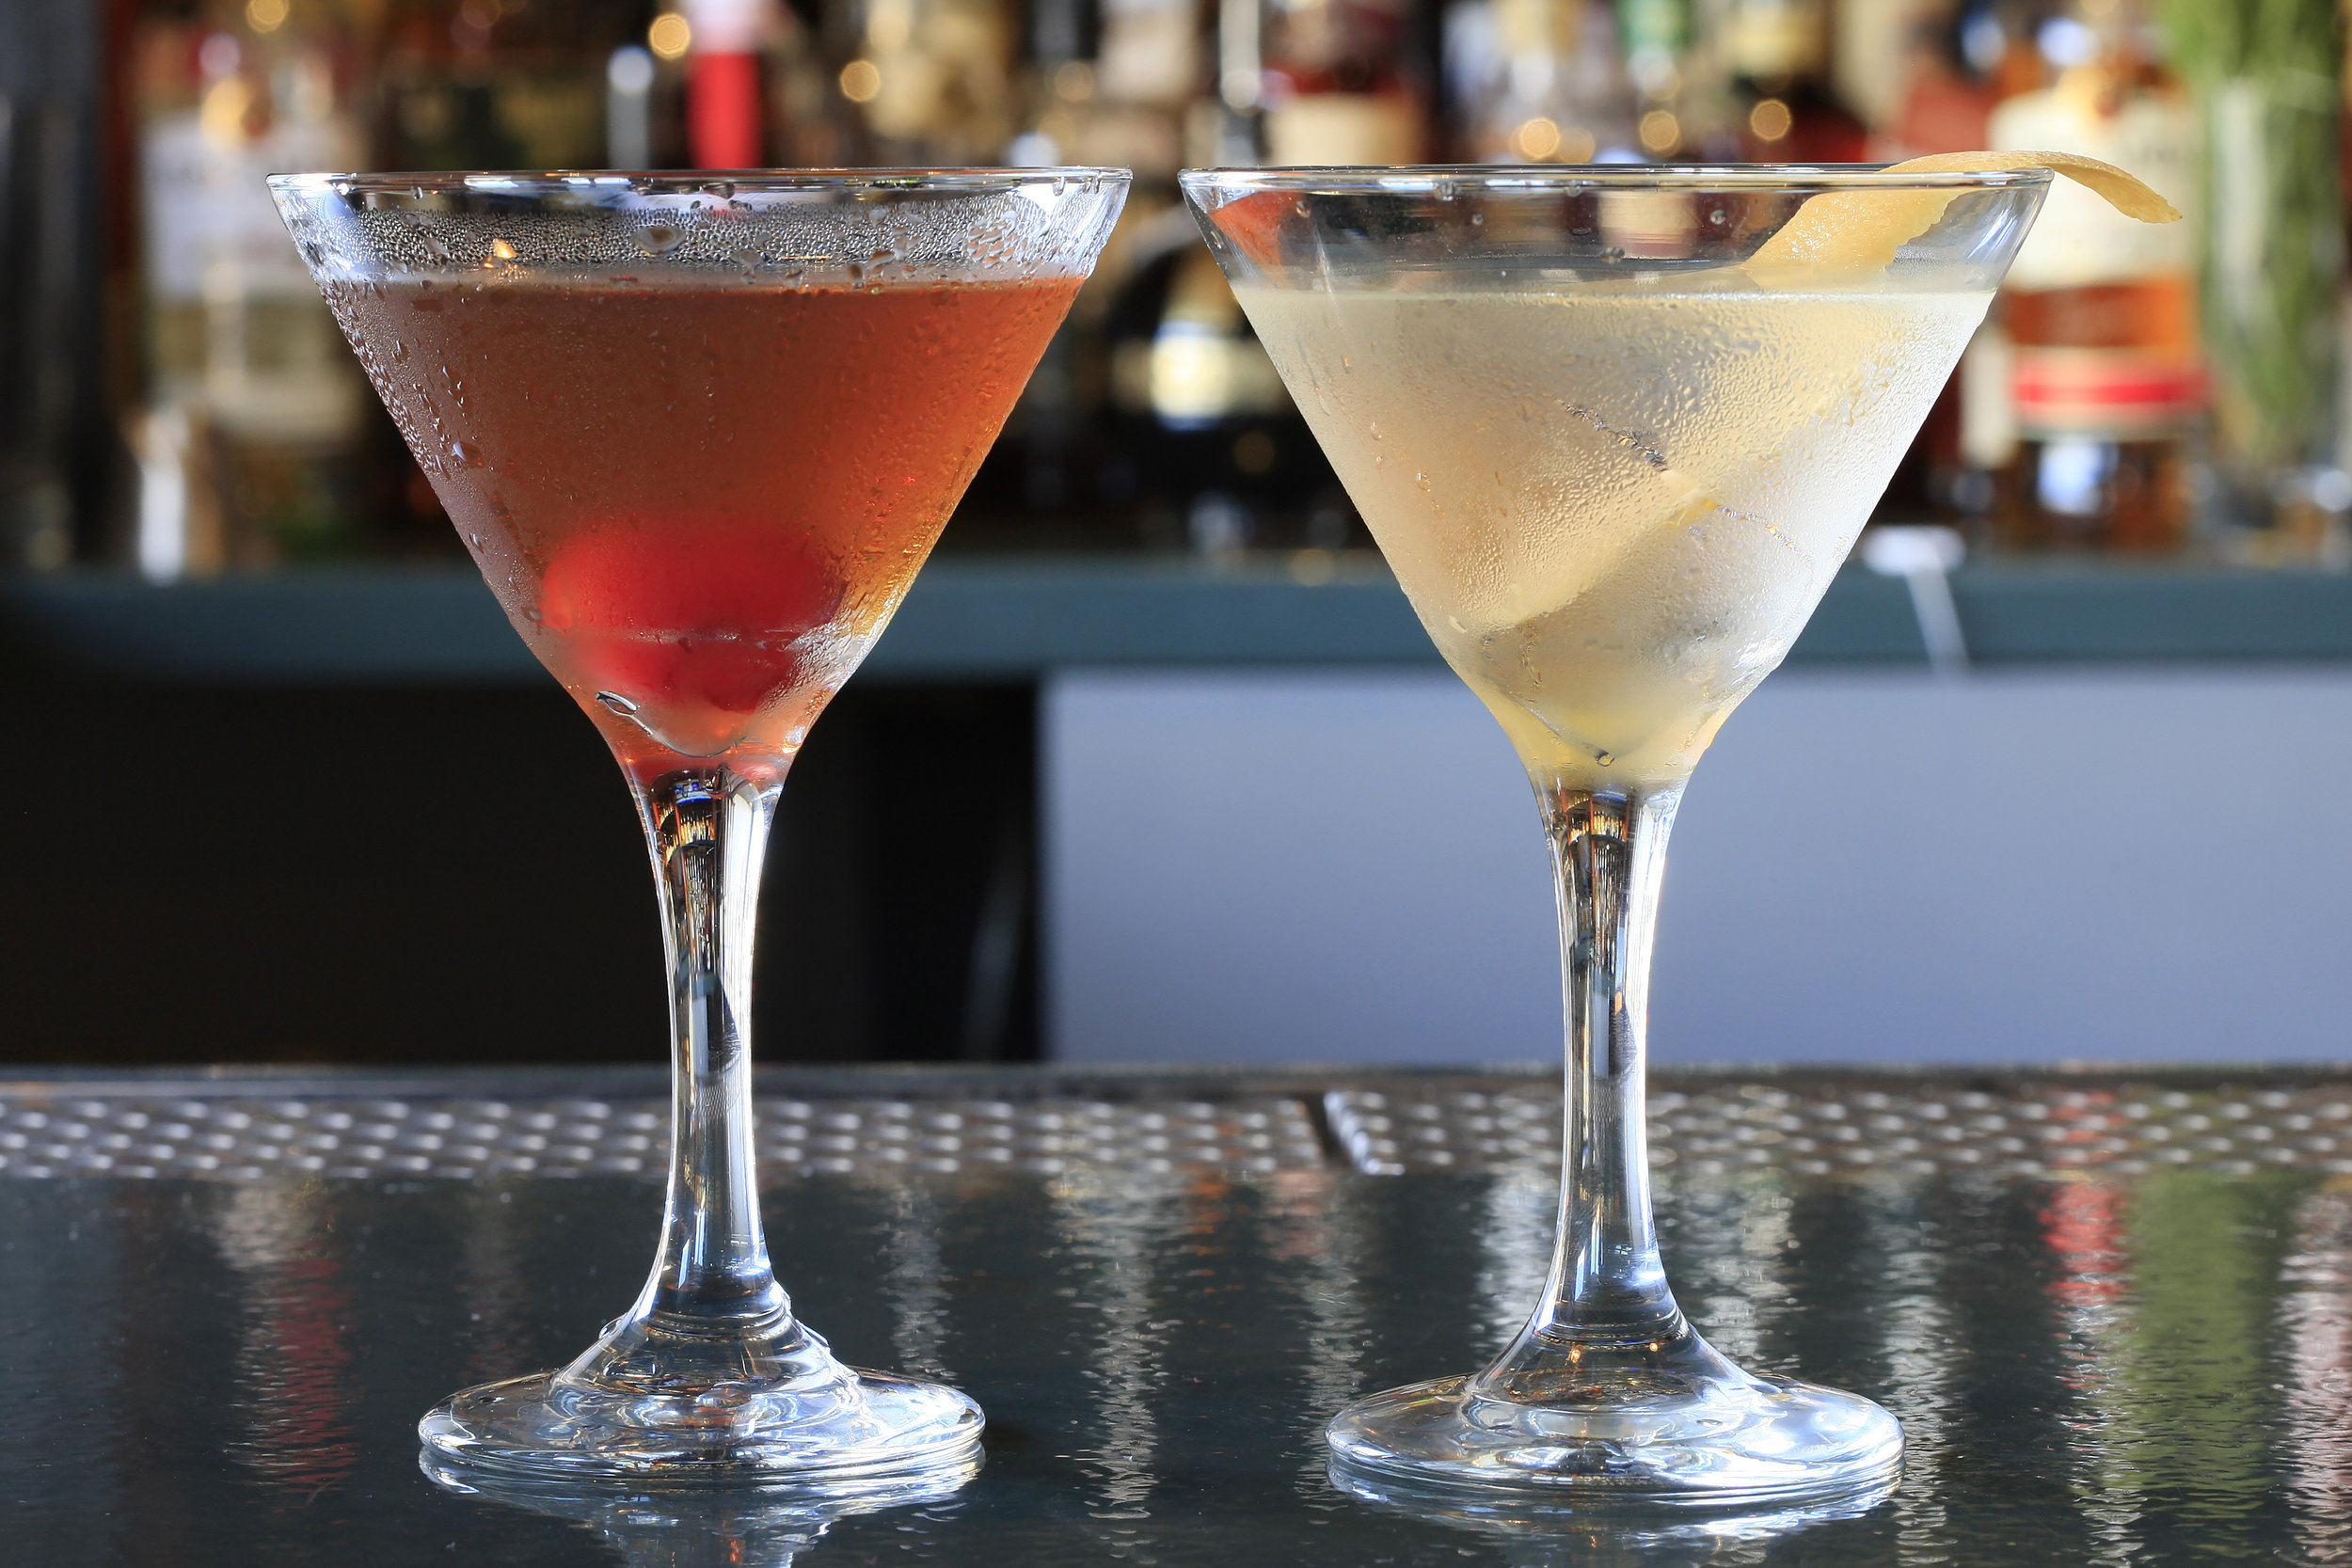 643-North-Build-your-own-Martini-or-Manhattan.jpg